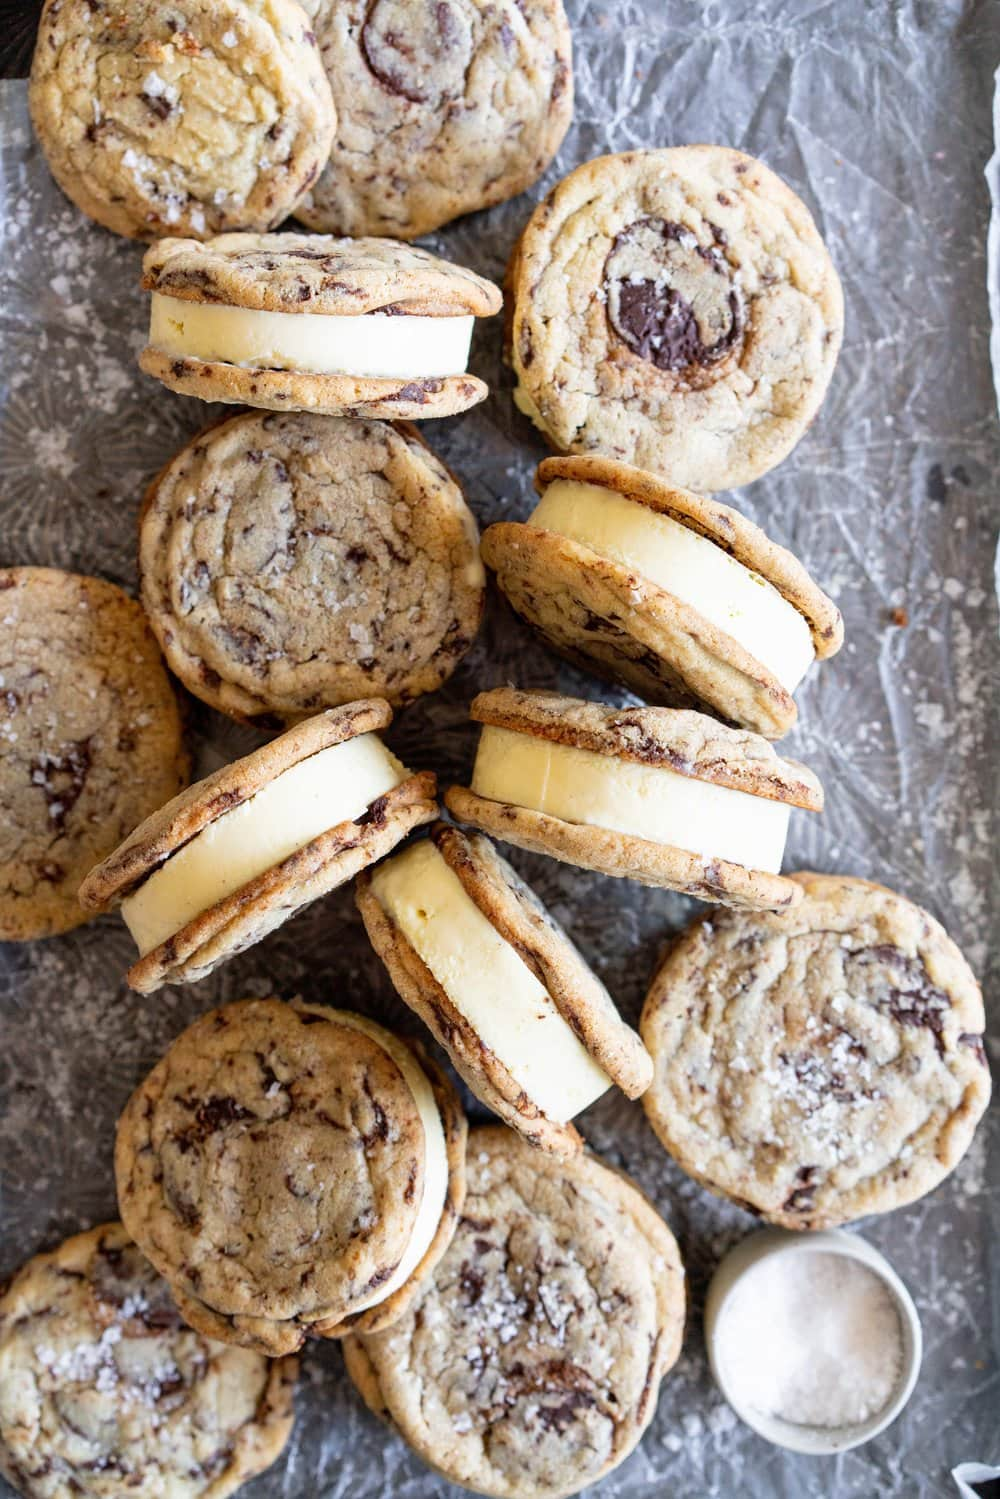 Chocolate Chip Cookie Ice Cream Sandwiches with Olive Oil Ice Cream. Thin and crispy chocolate chip cookies sandwich a creamy, smooth disc of olive oil ice cream. The perfect summer treat. #oliveoilicecream #icecreamsandwich #chocolatechipcookie